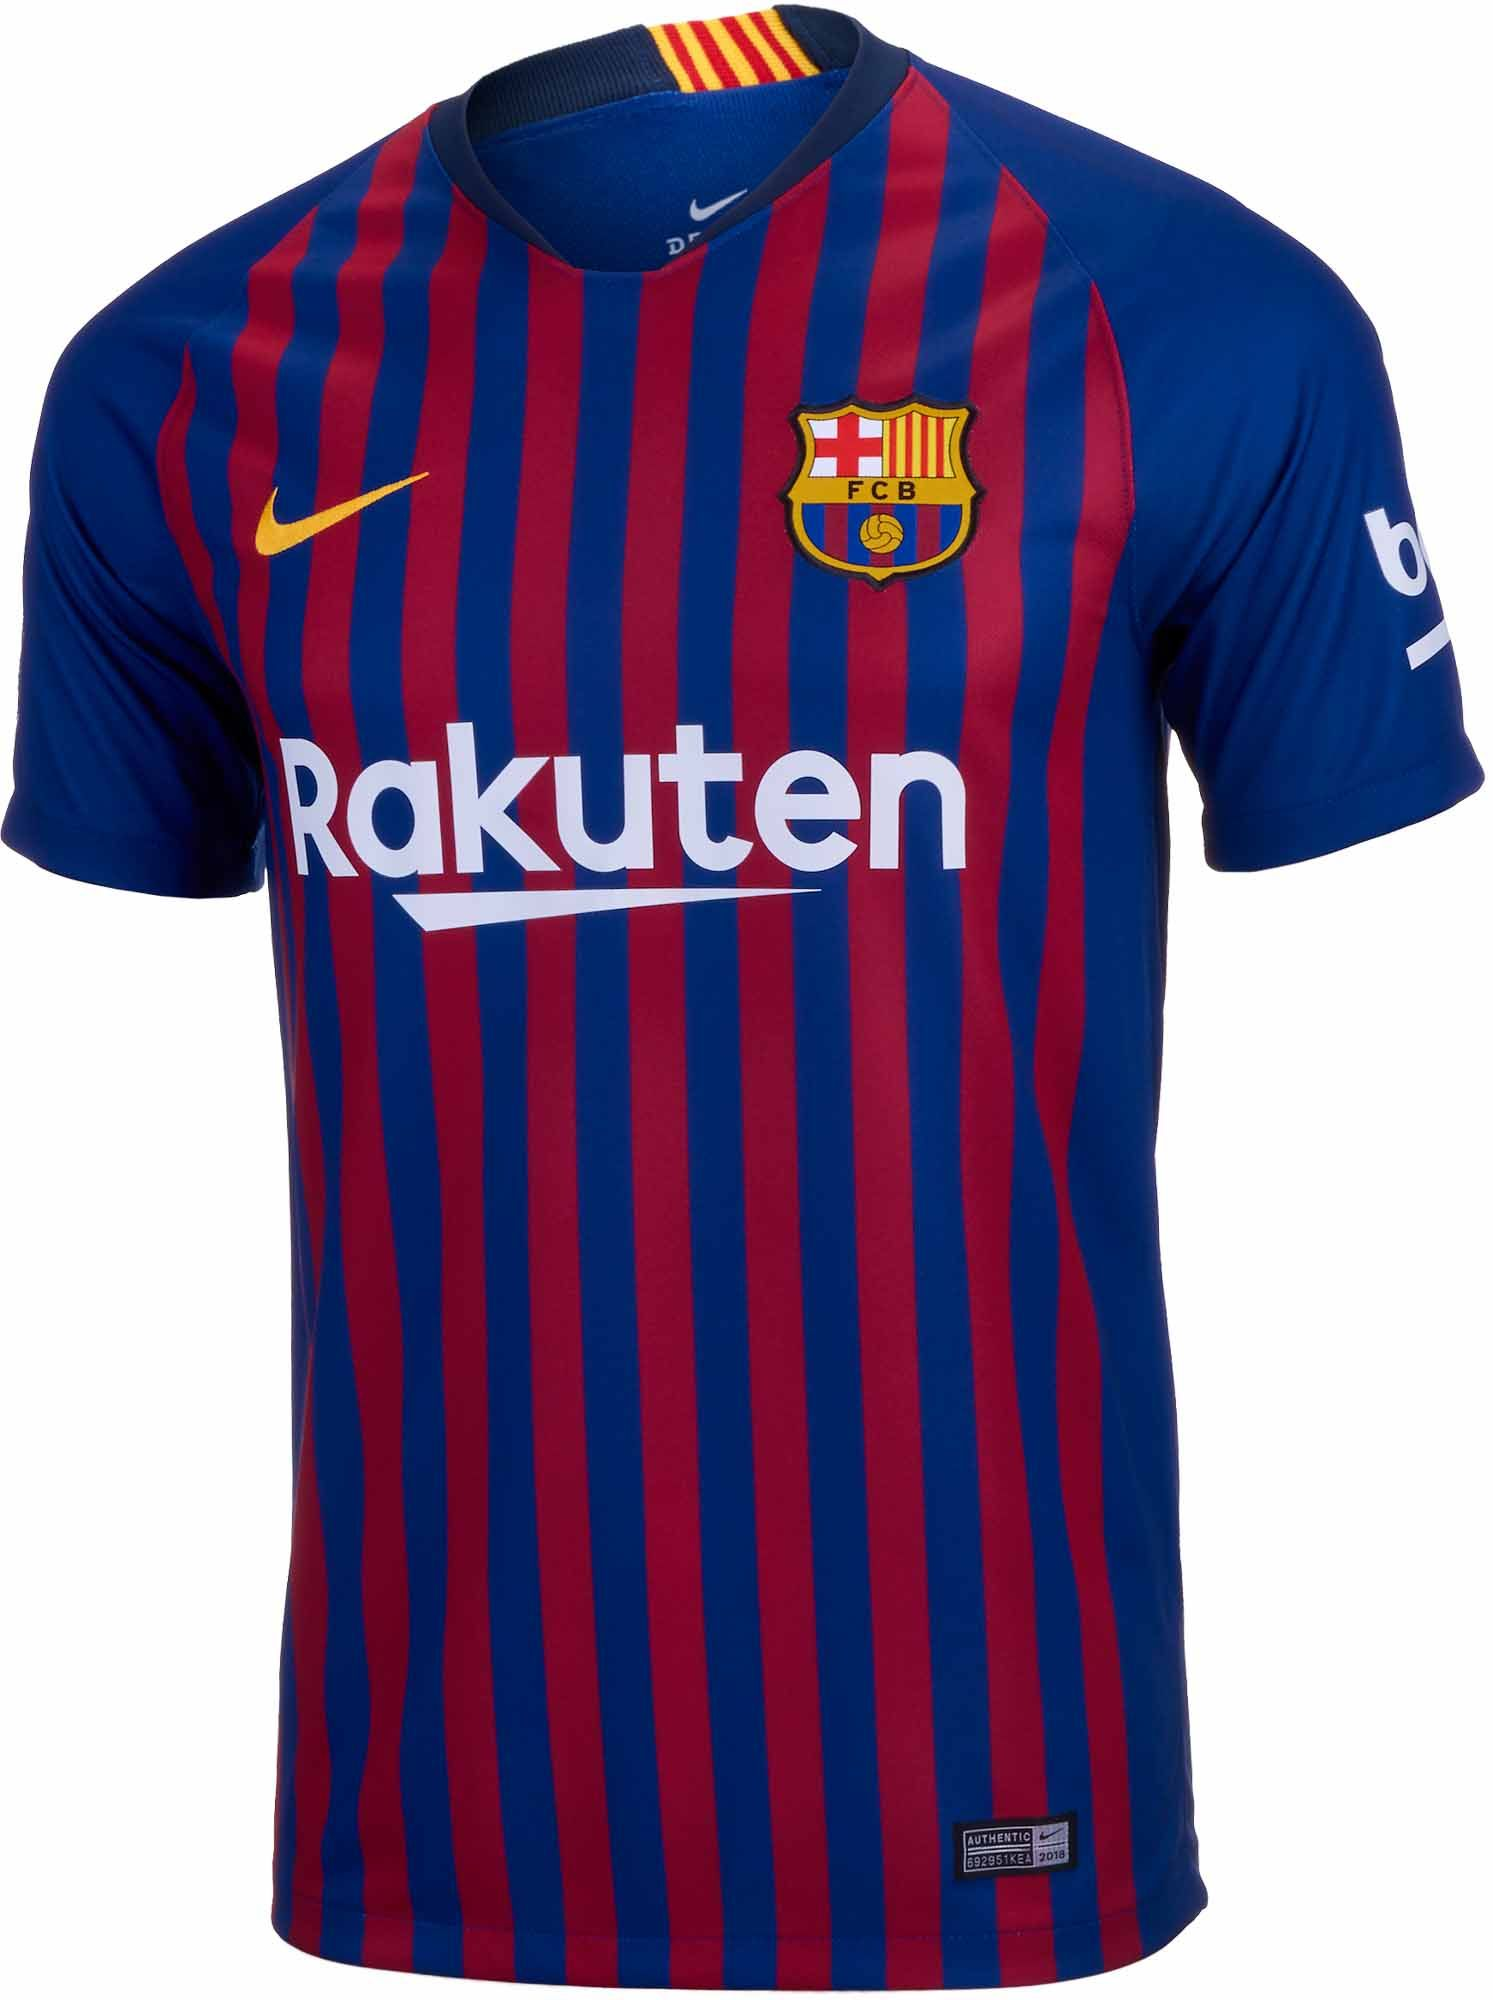 32ed1d9026 Buy this 2018 19 Kids FC Barcelona Home Jersey from www.soccerpro.com